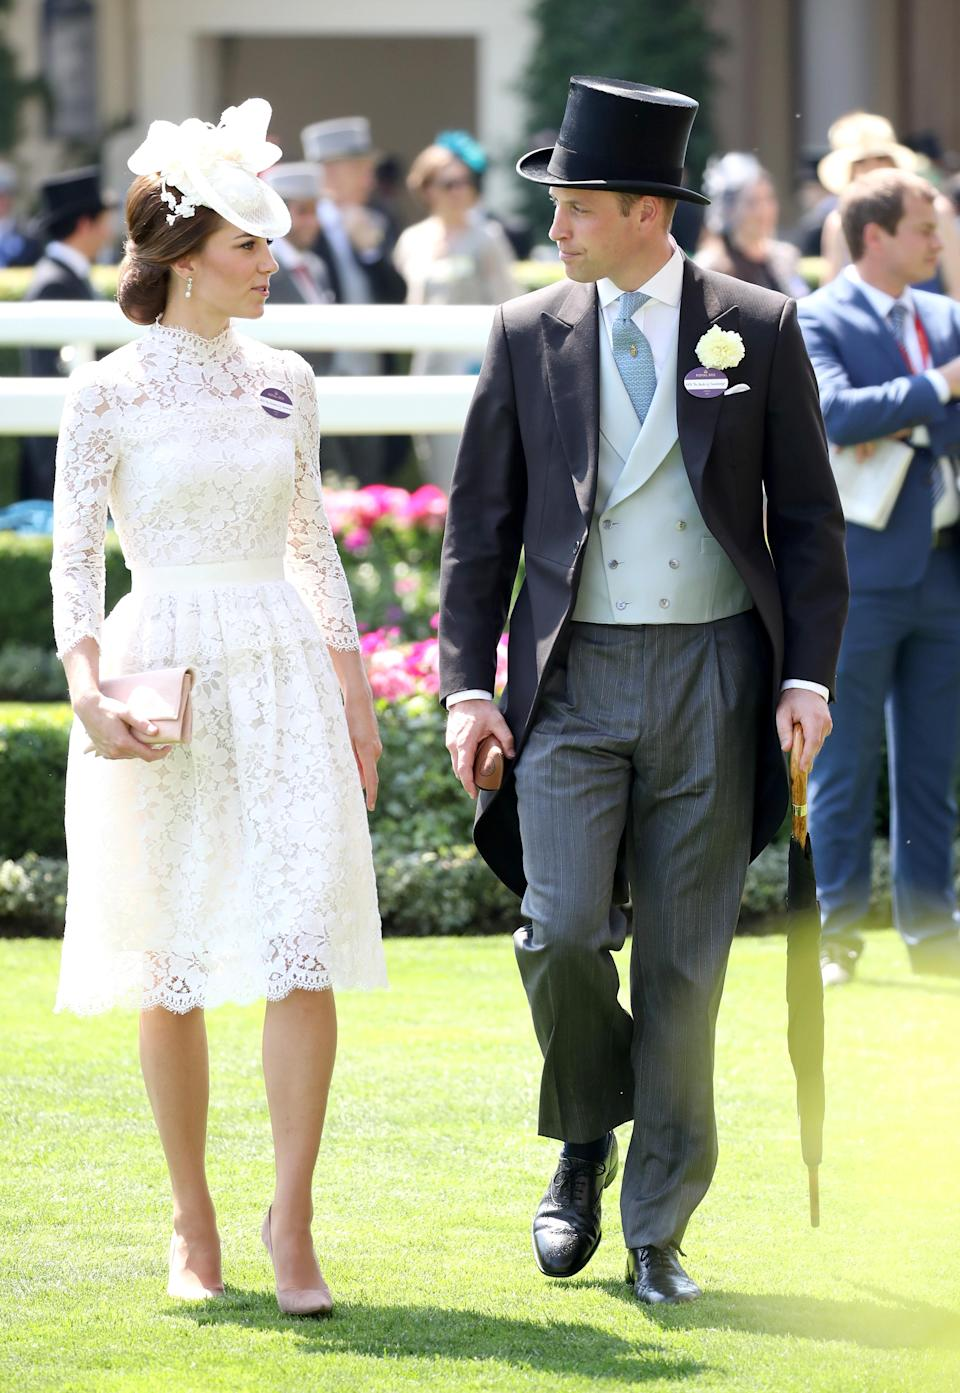 The Duke and Duchess of Cambridge arrive at Royal Ascot 2017 [Photo: Getty]